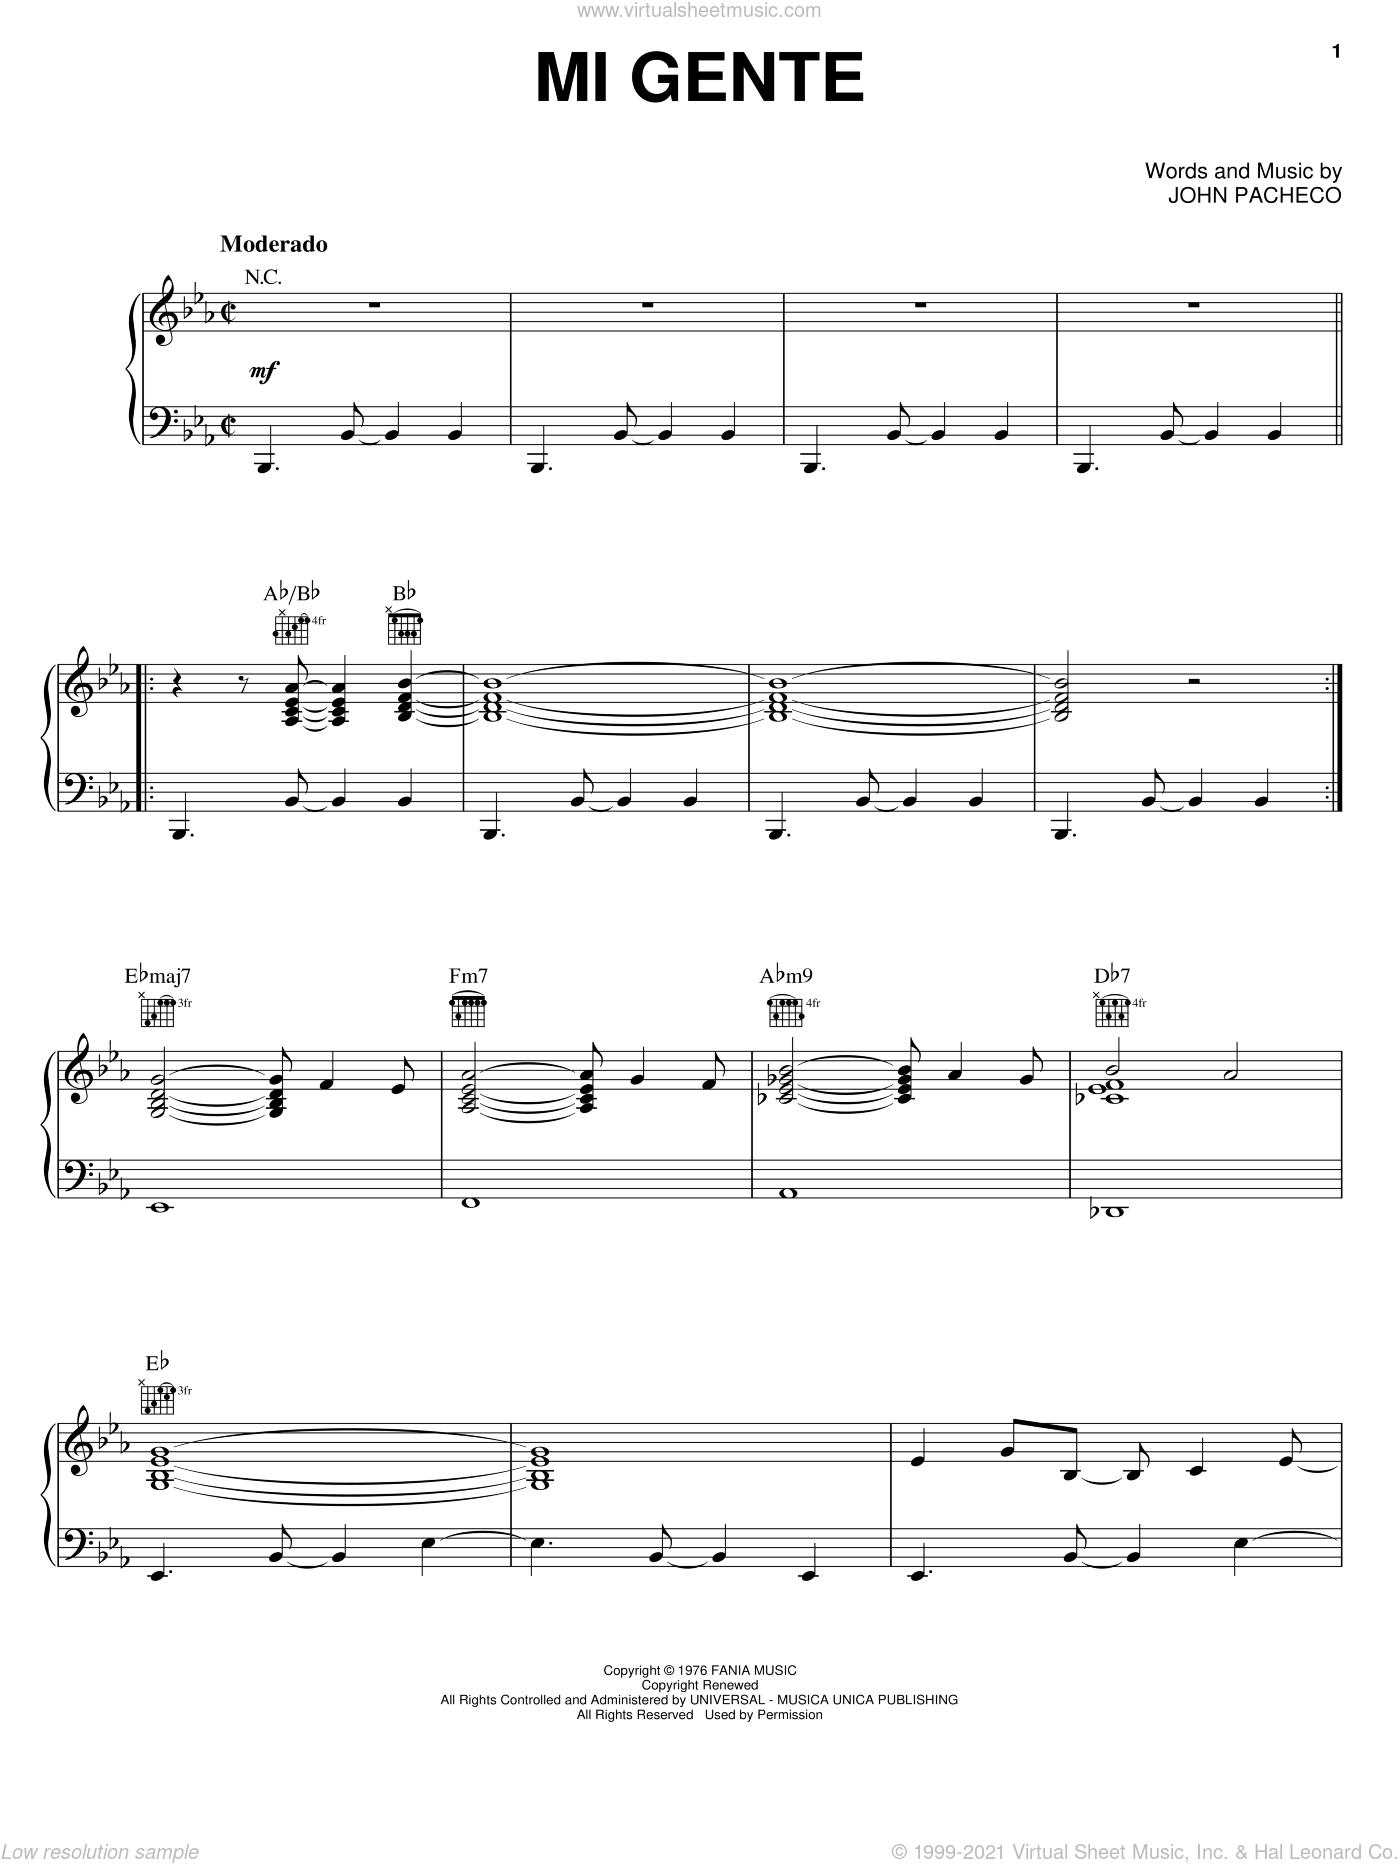 Mi Gente sheet music for voice, piano or guitar by Hector Lavoe and John Pacheco, intermediate skill level